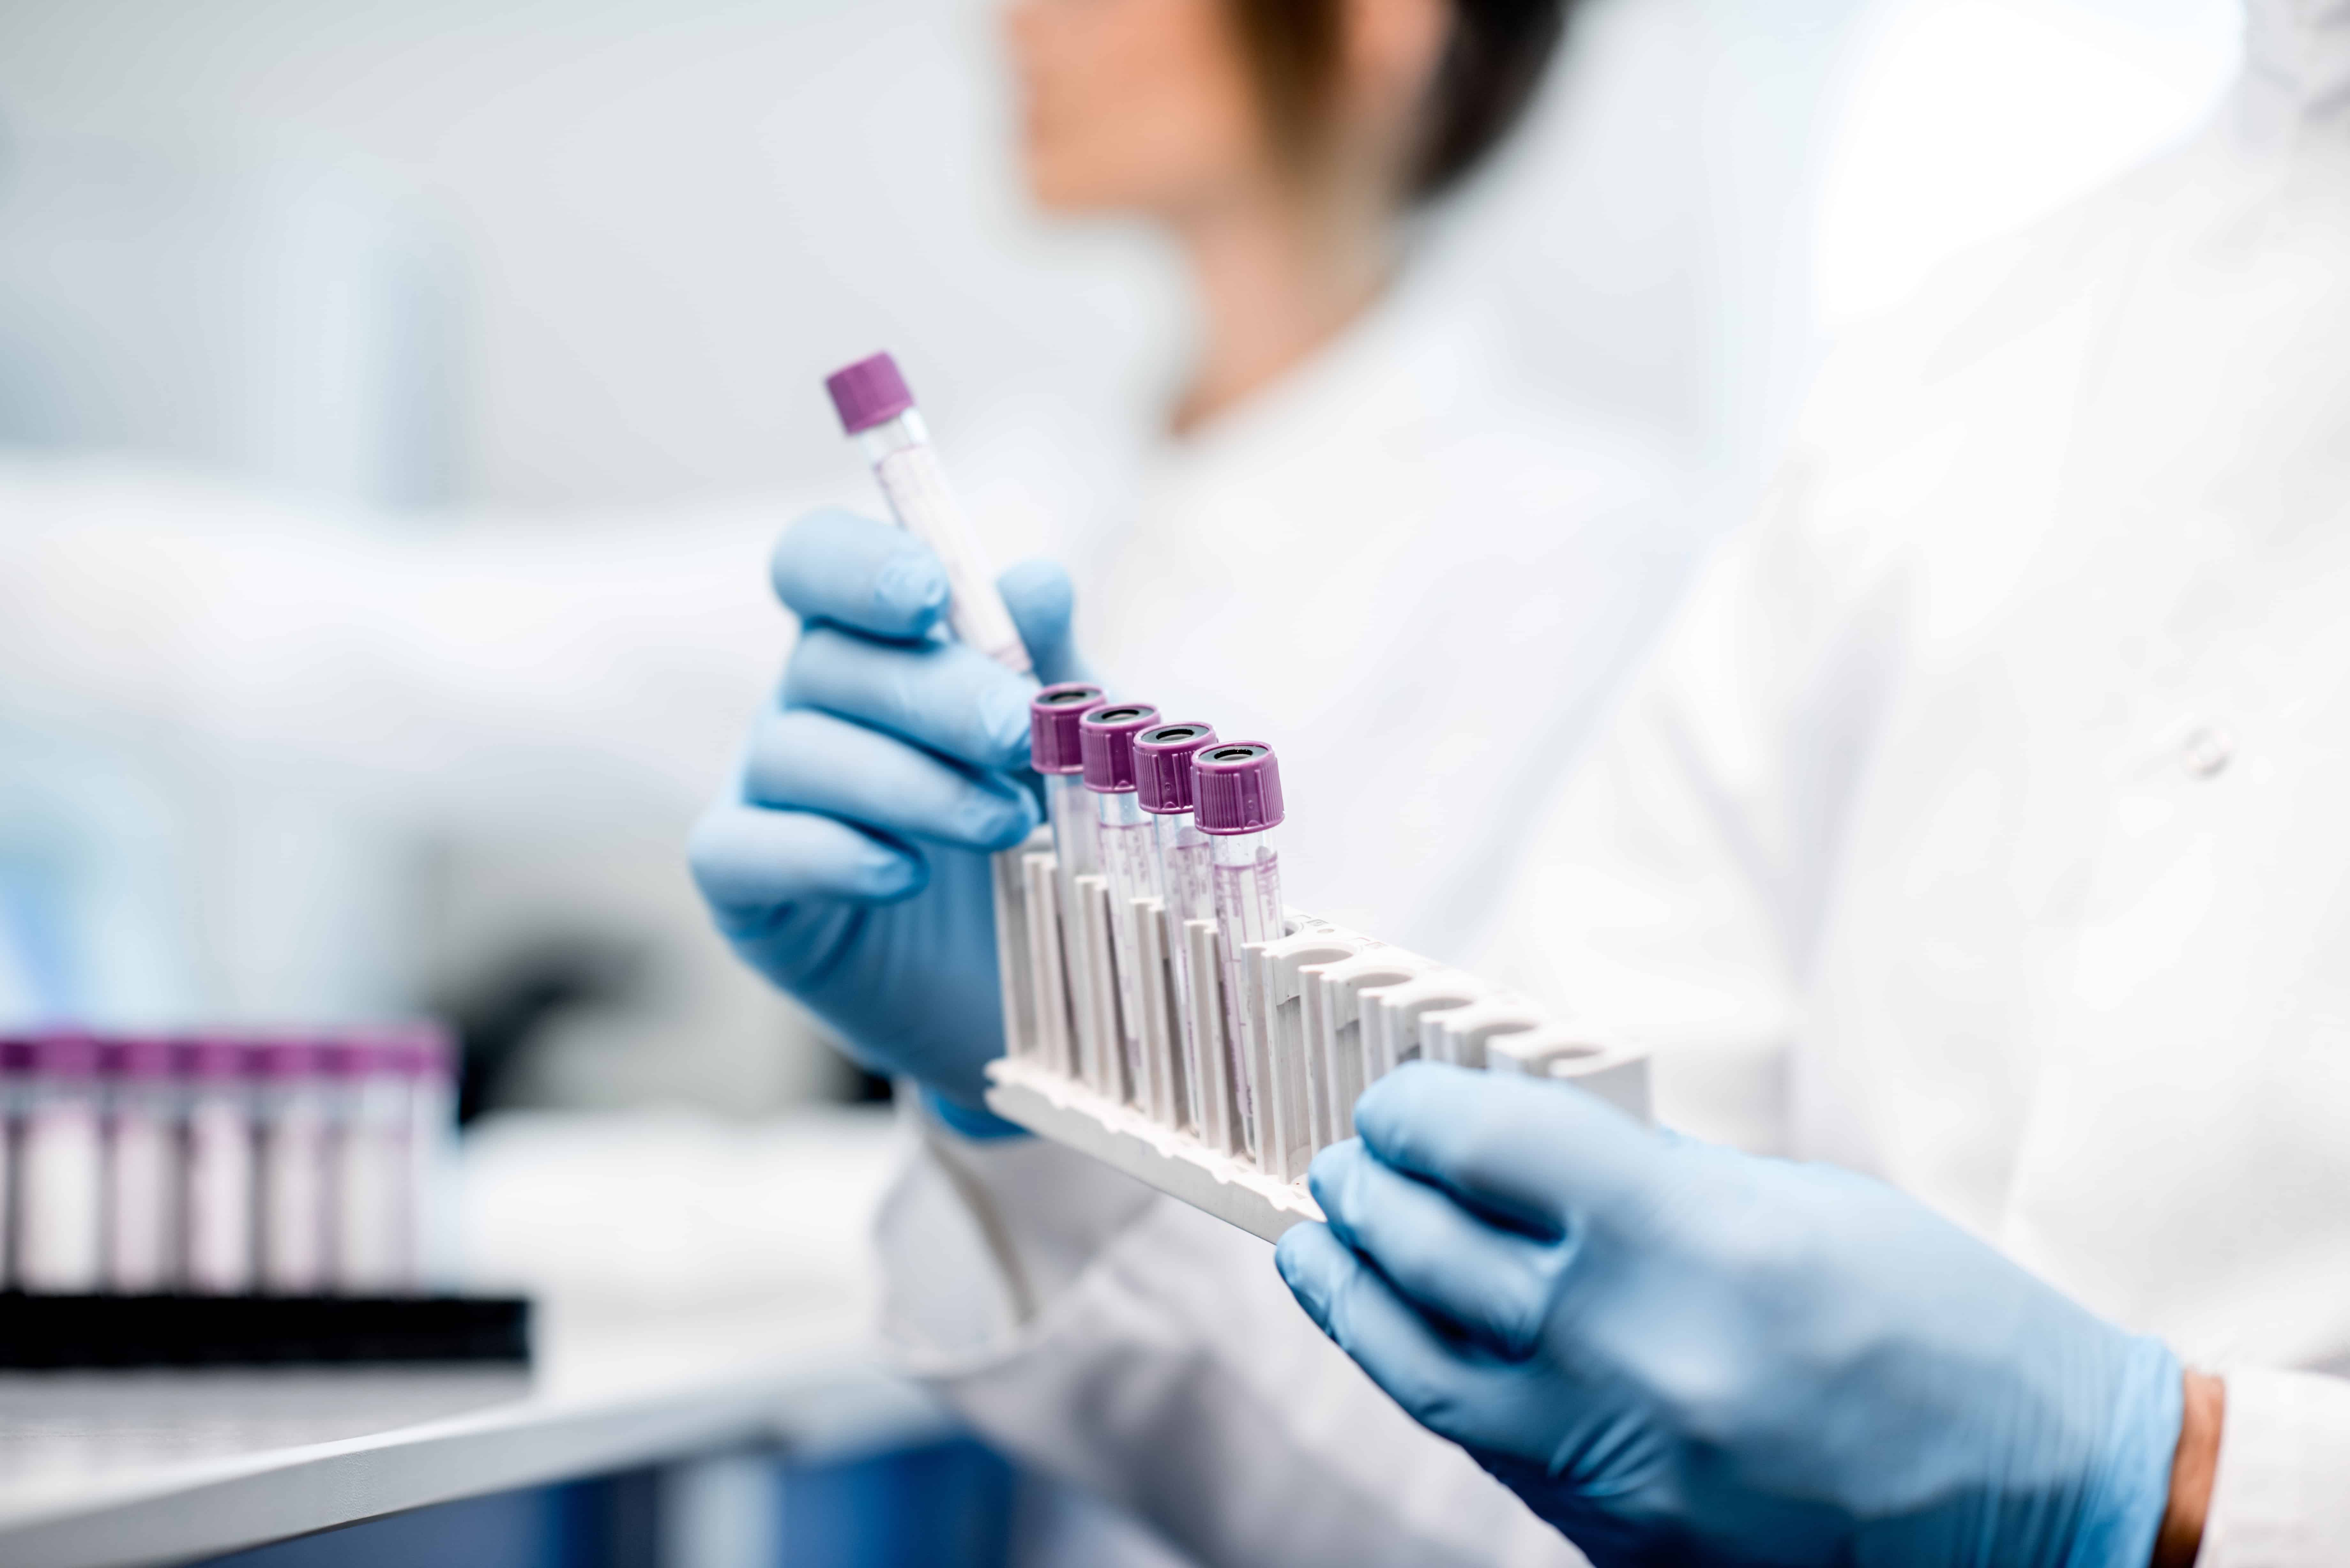 Weekly Digest: Pooled COVID-19 tests could help scale up testing & identify disease hotspots; Study reports drop in incidence of MDR infections in US hospitals; Pre-symptomatic COVID-19 transmission in Singapore.